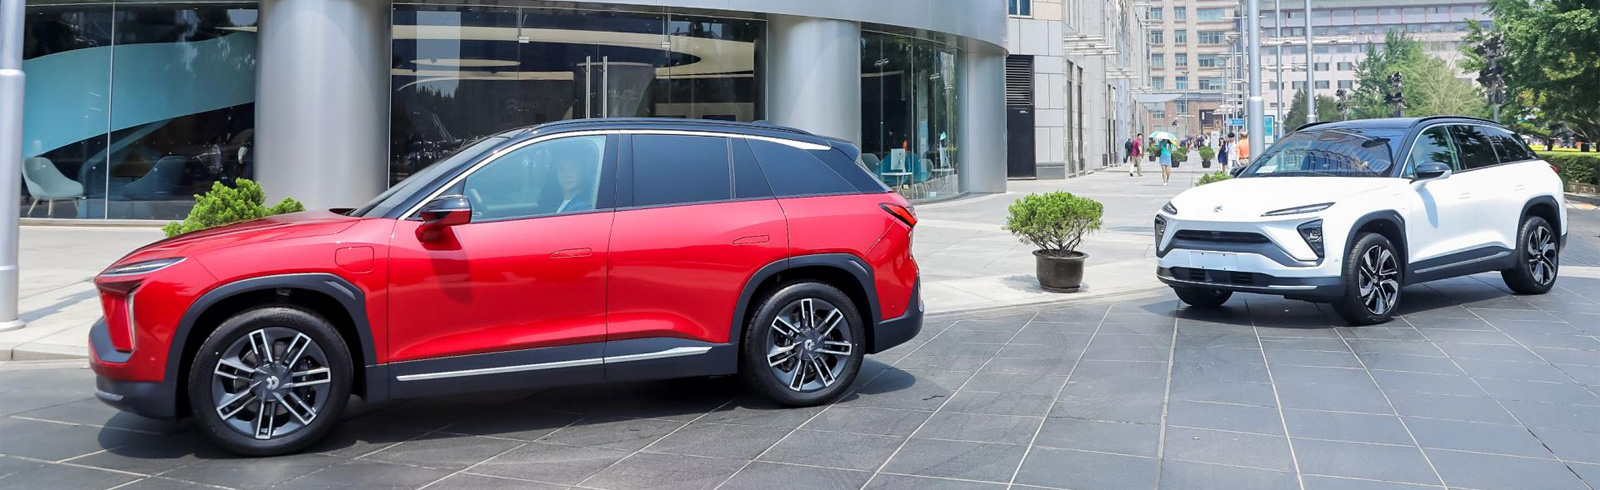 NIO enters into definitive agreements for investments in NIO China